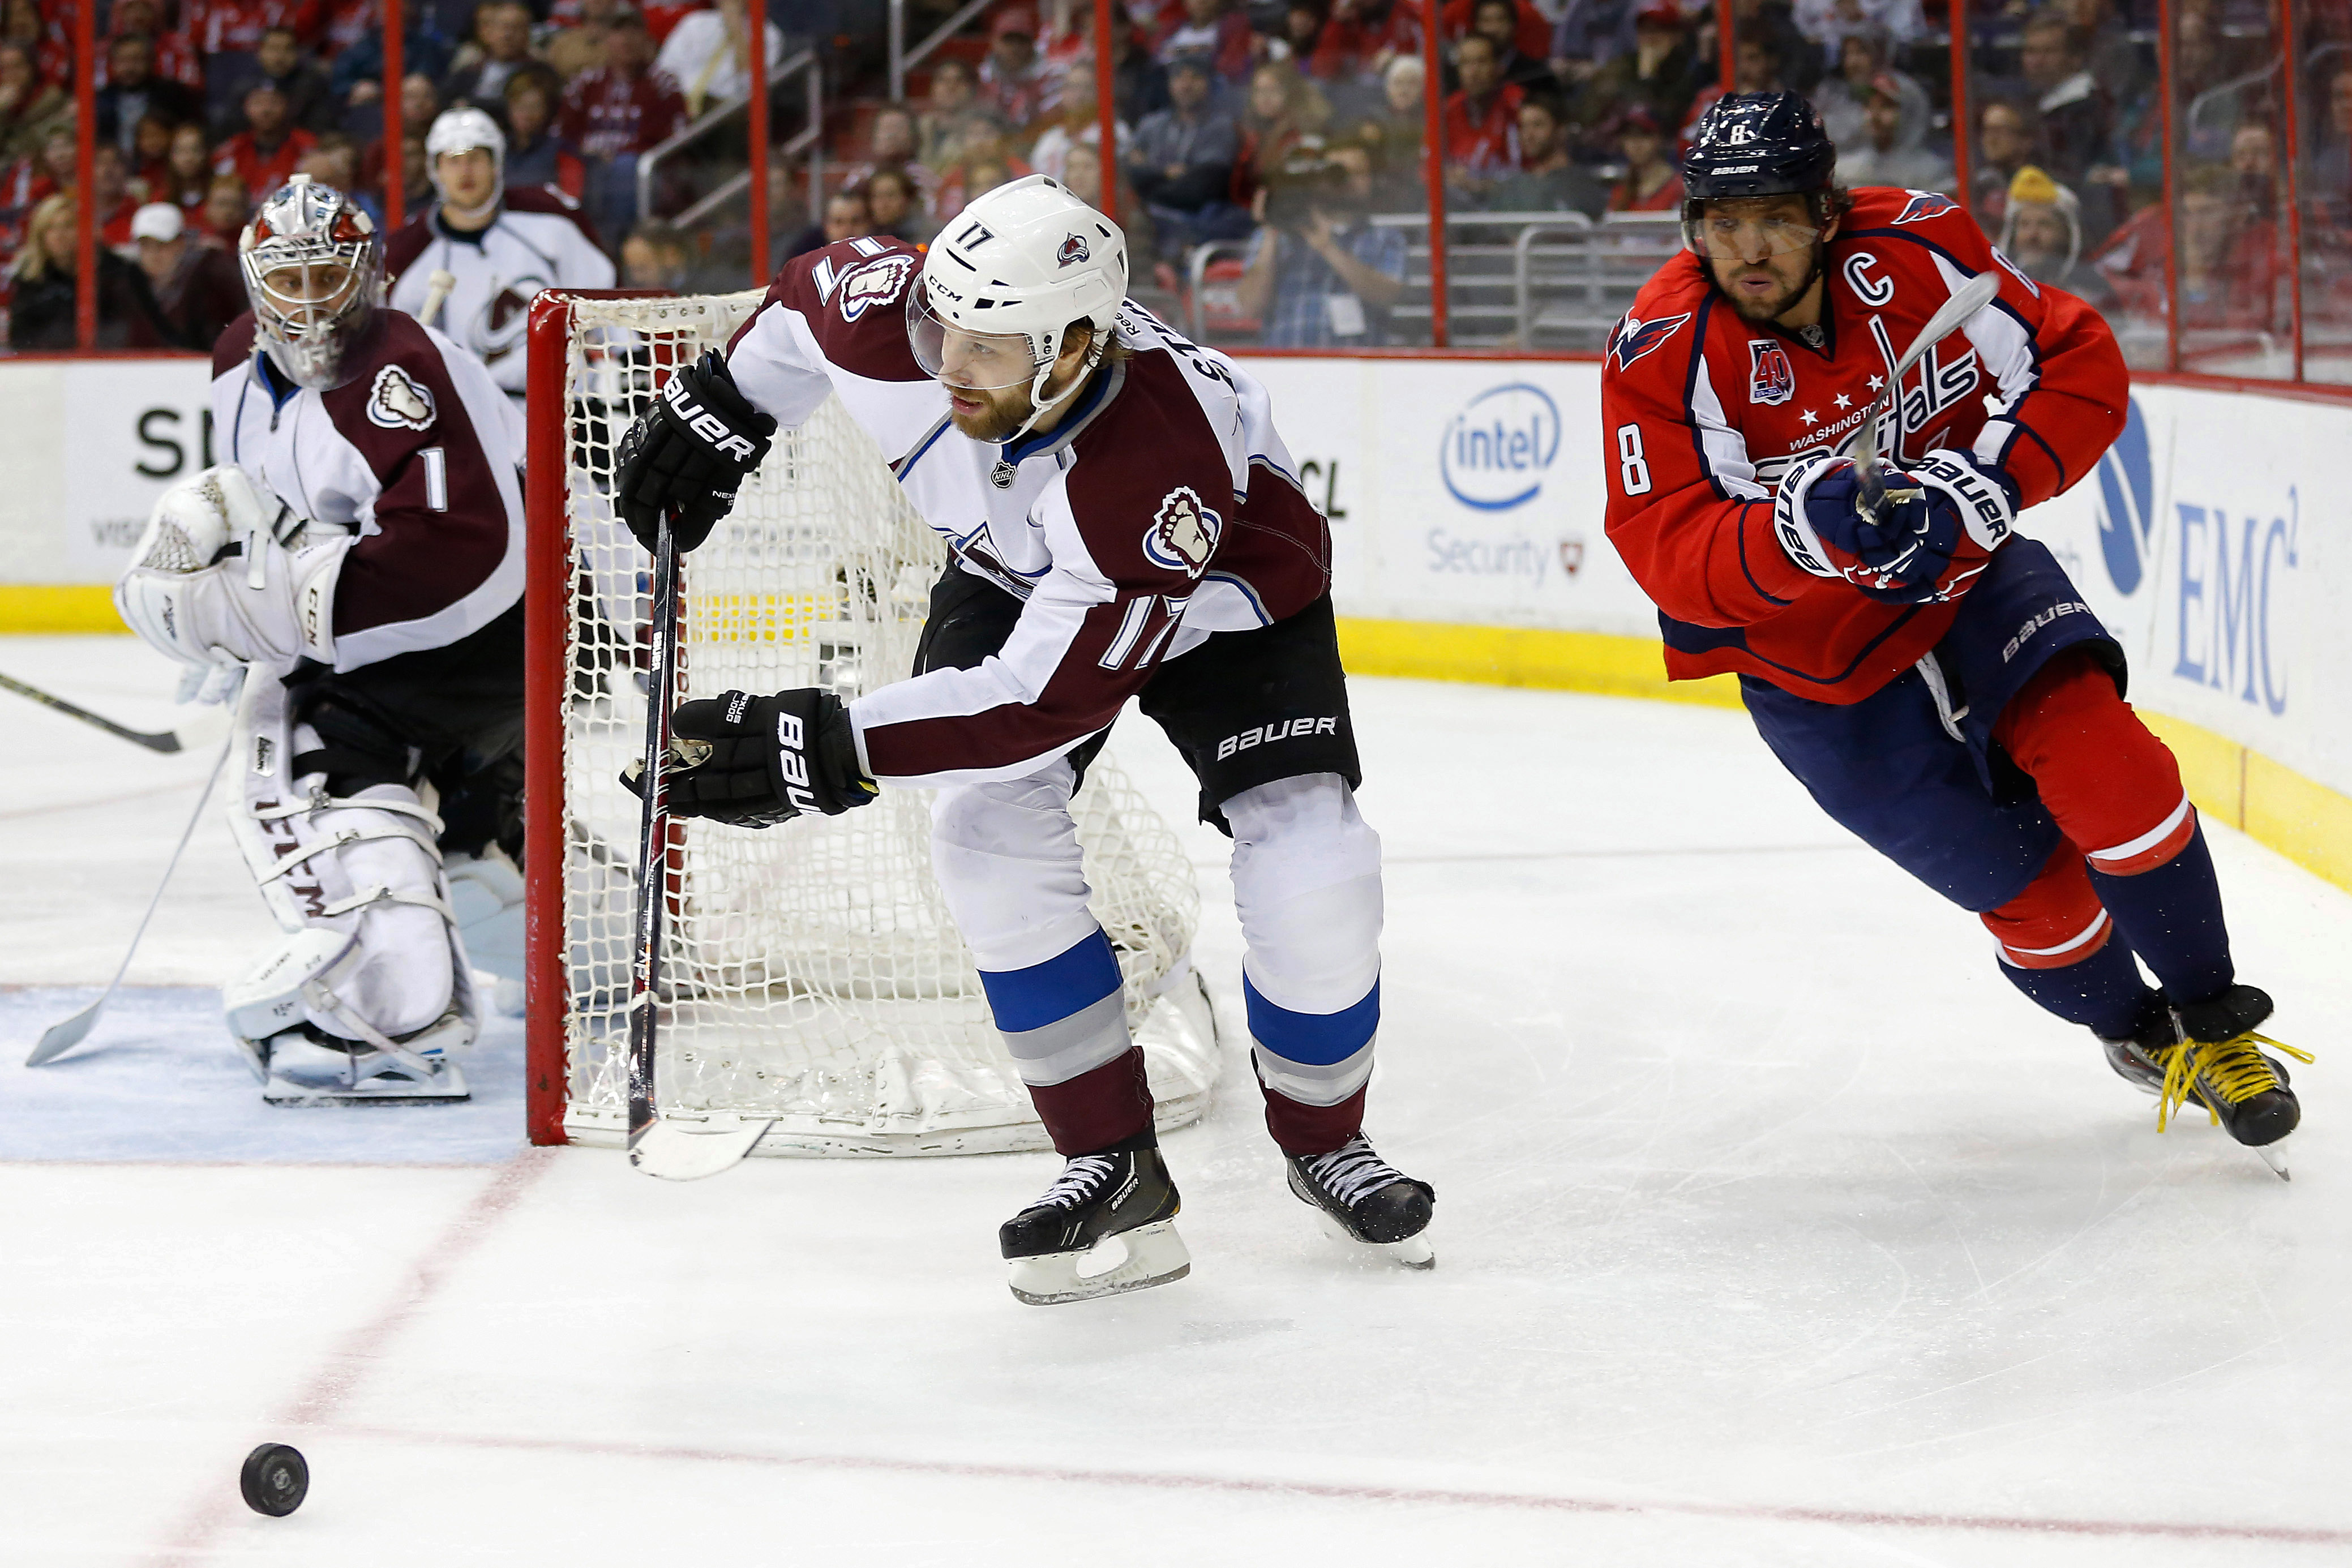 Alex Ovechkin and Semyon Varlamov, pictured here dangerously close to a possible black hole